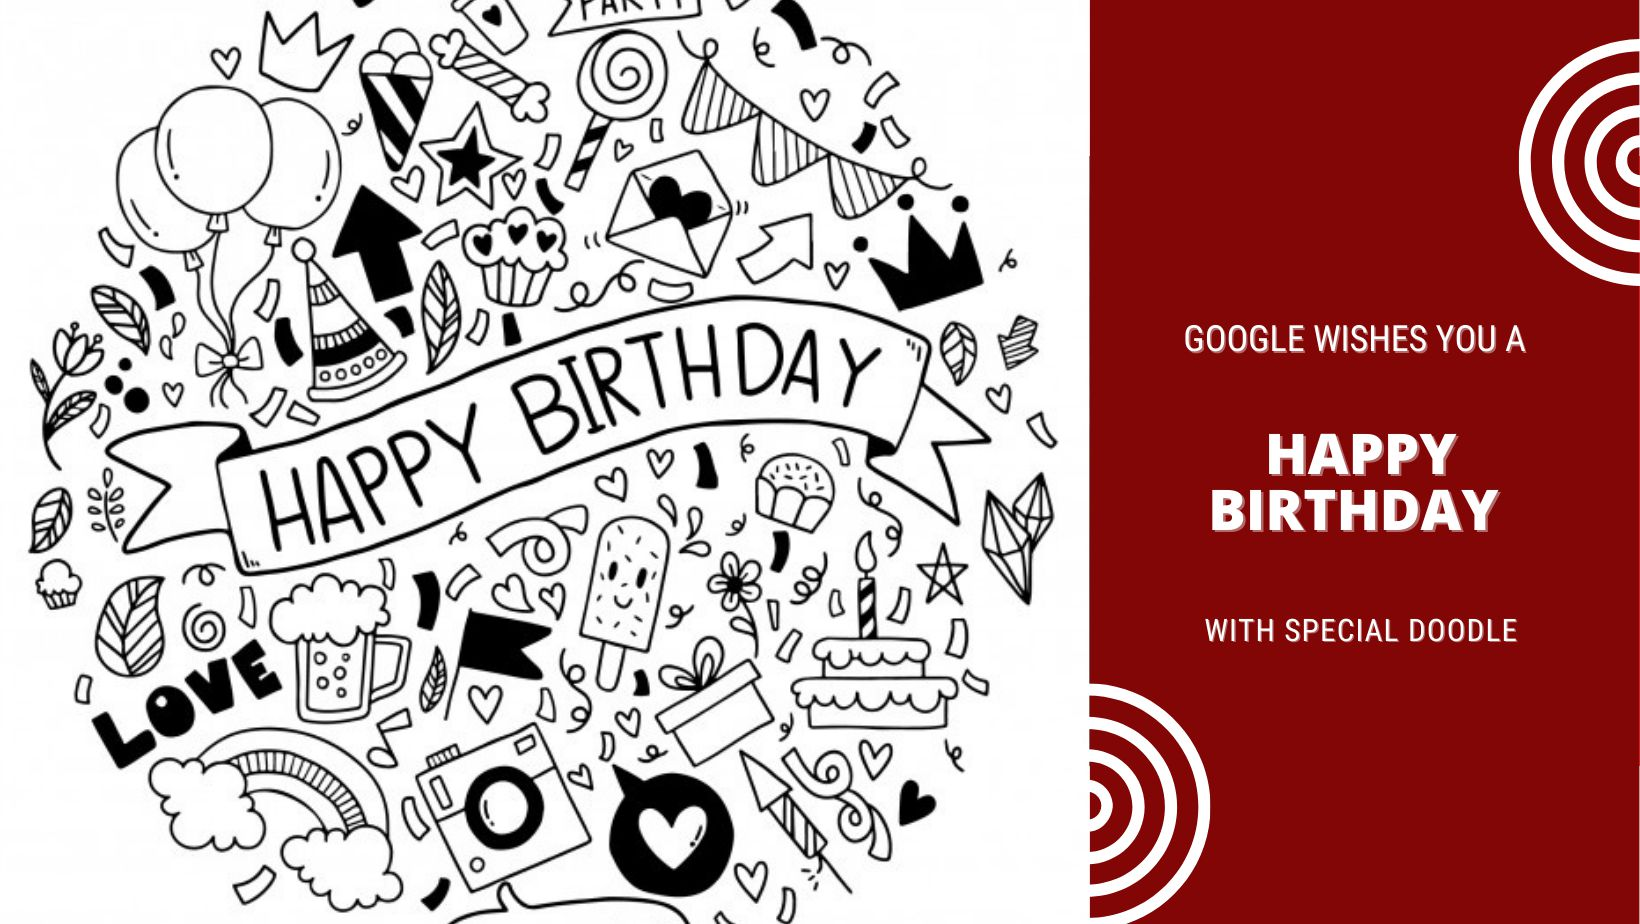 google-wishes-you-a-happy-birthday-with-special-doodle